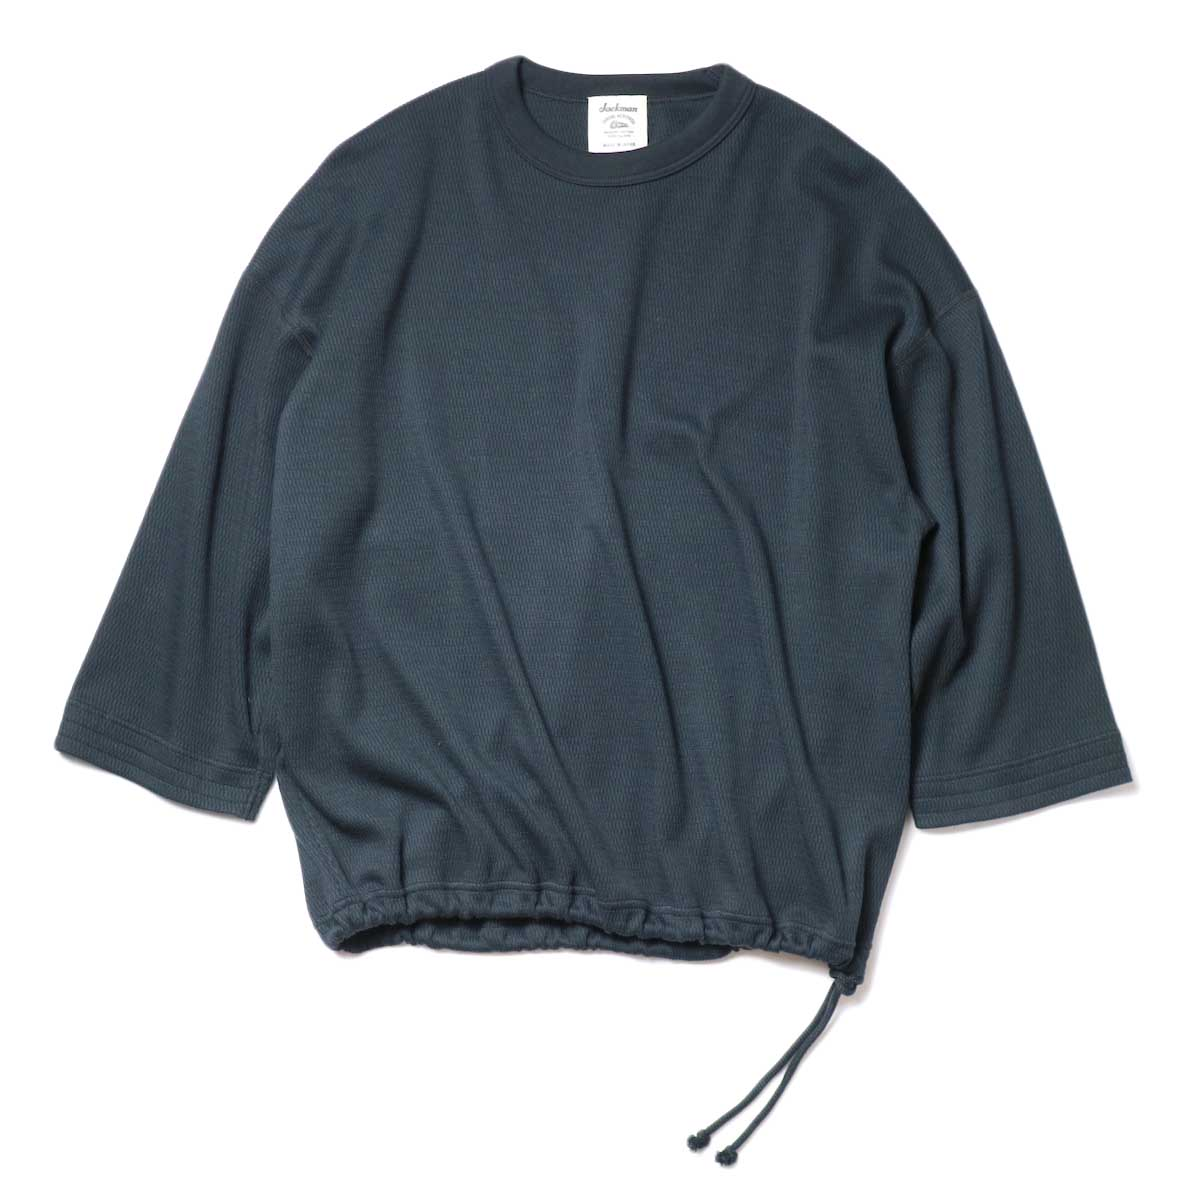 Jackman / Thermal Drop Crew (Black) 正面